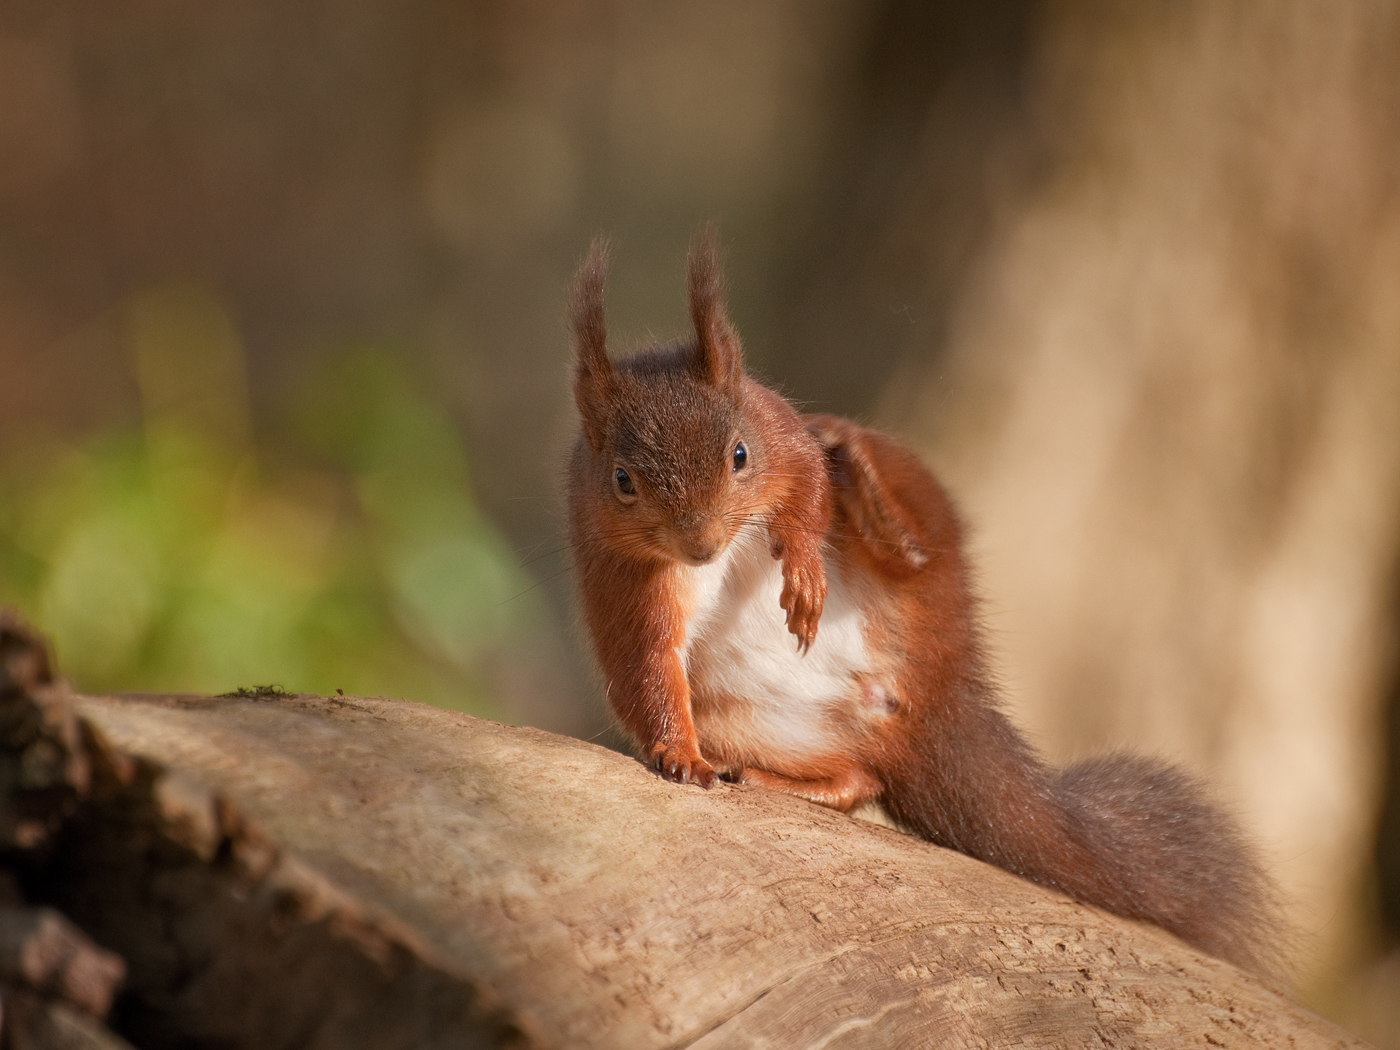 086 Scratching Red Squirrel.jpg